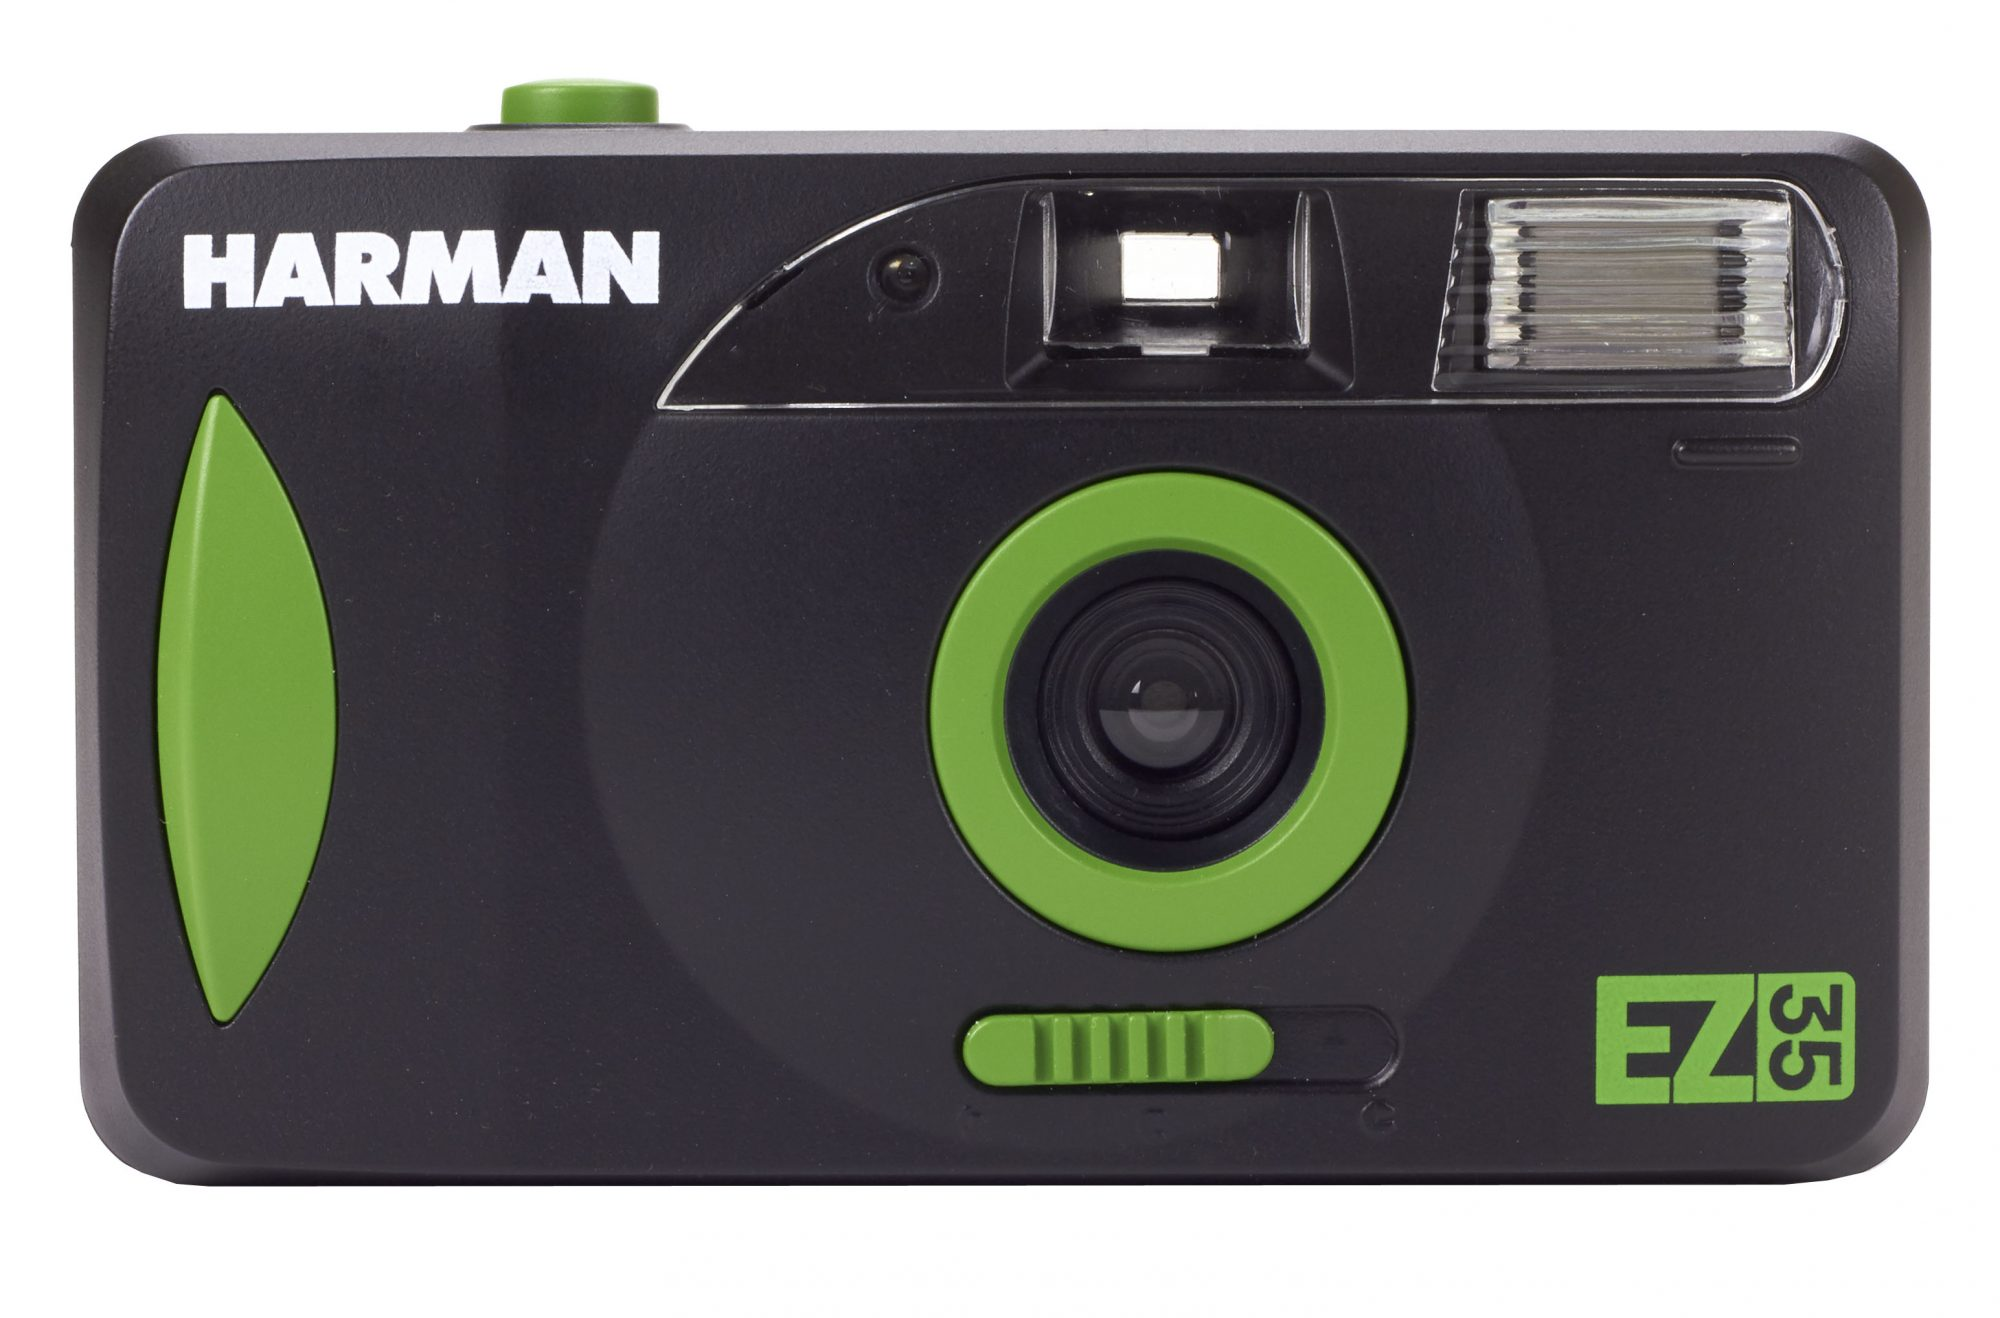 Harman EZ-35 camera (Pic: Harman)